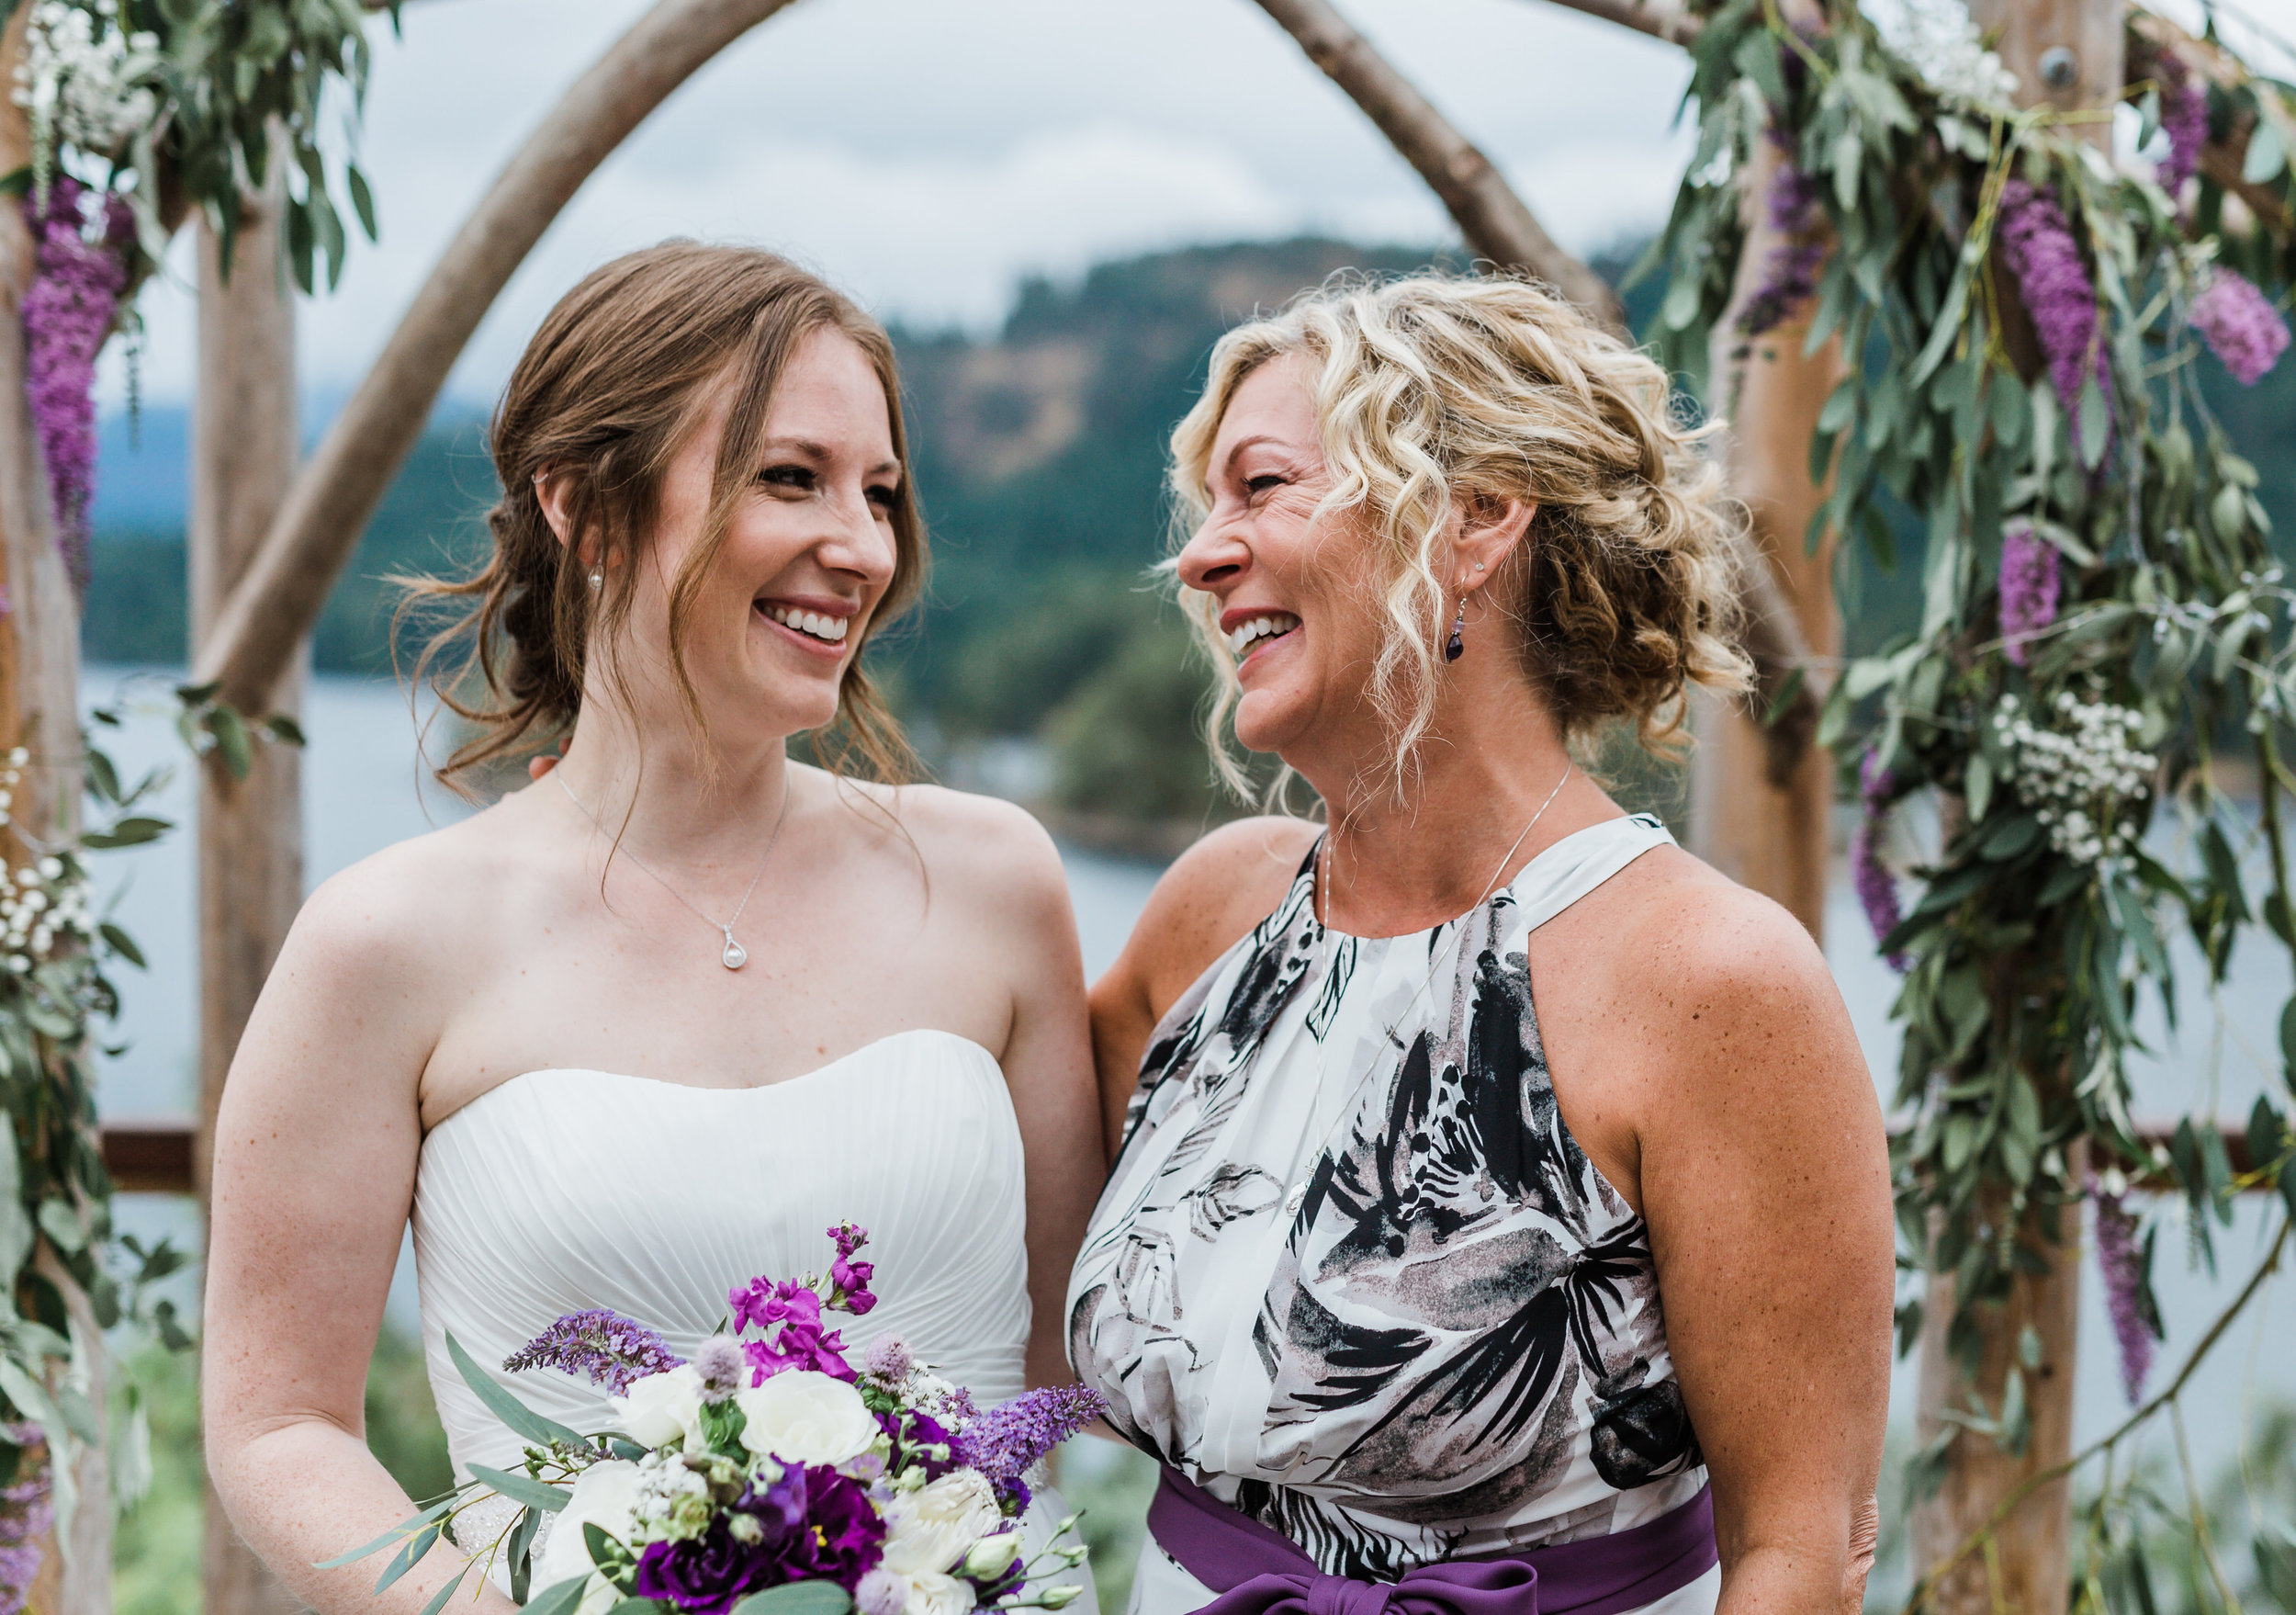 West Coast Wilderness Lodge Wedding Photos - Vancouver Wedding Photographer & Videographer - Sunshine Coast Wedding Photos - Sunshine Coast Wedding Photographer - Jennifer Picard Photography - IMG_5370.jpg